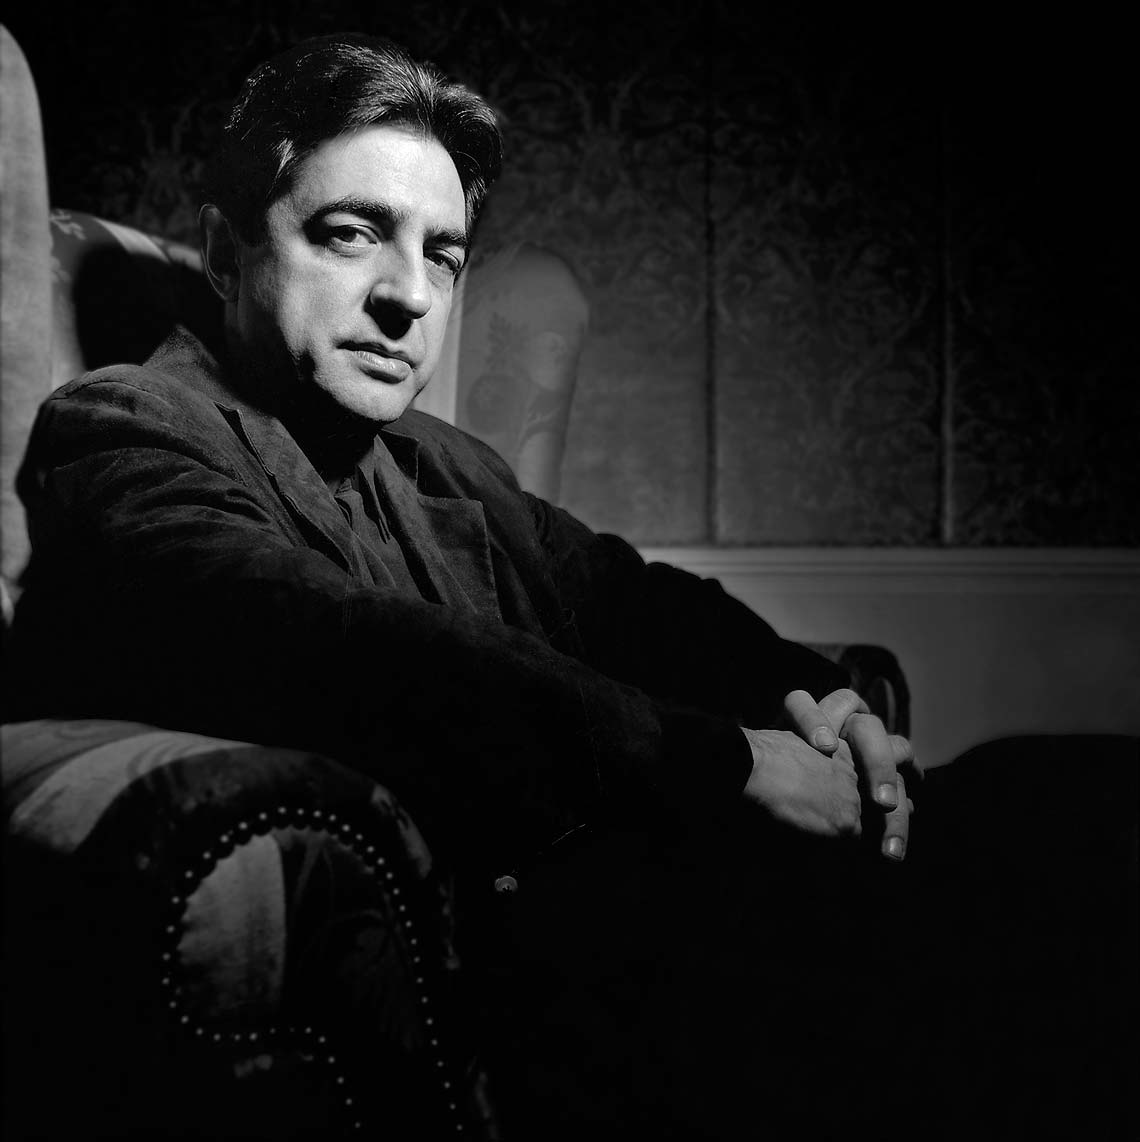 Joe Mantegna in chair portrait cool, Andy Goodwin Photography